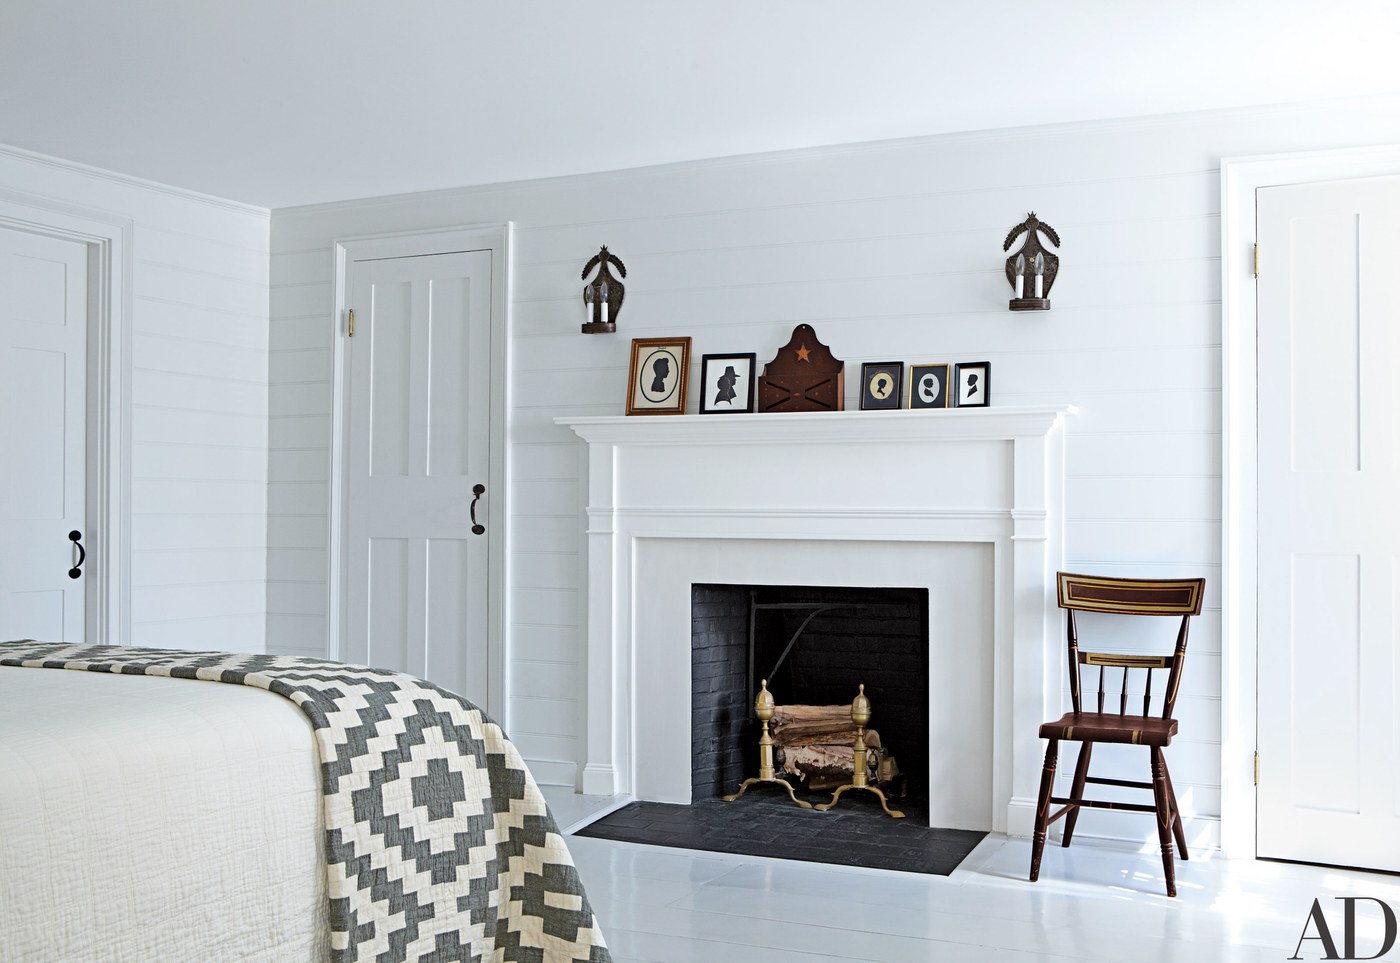 Bedroom-fireplace-16.jpg